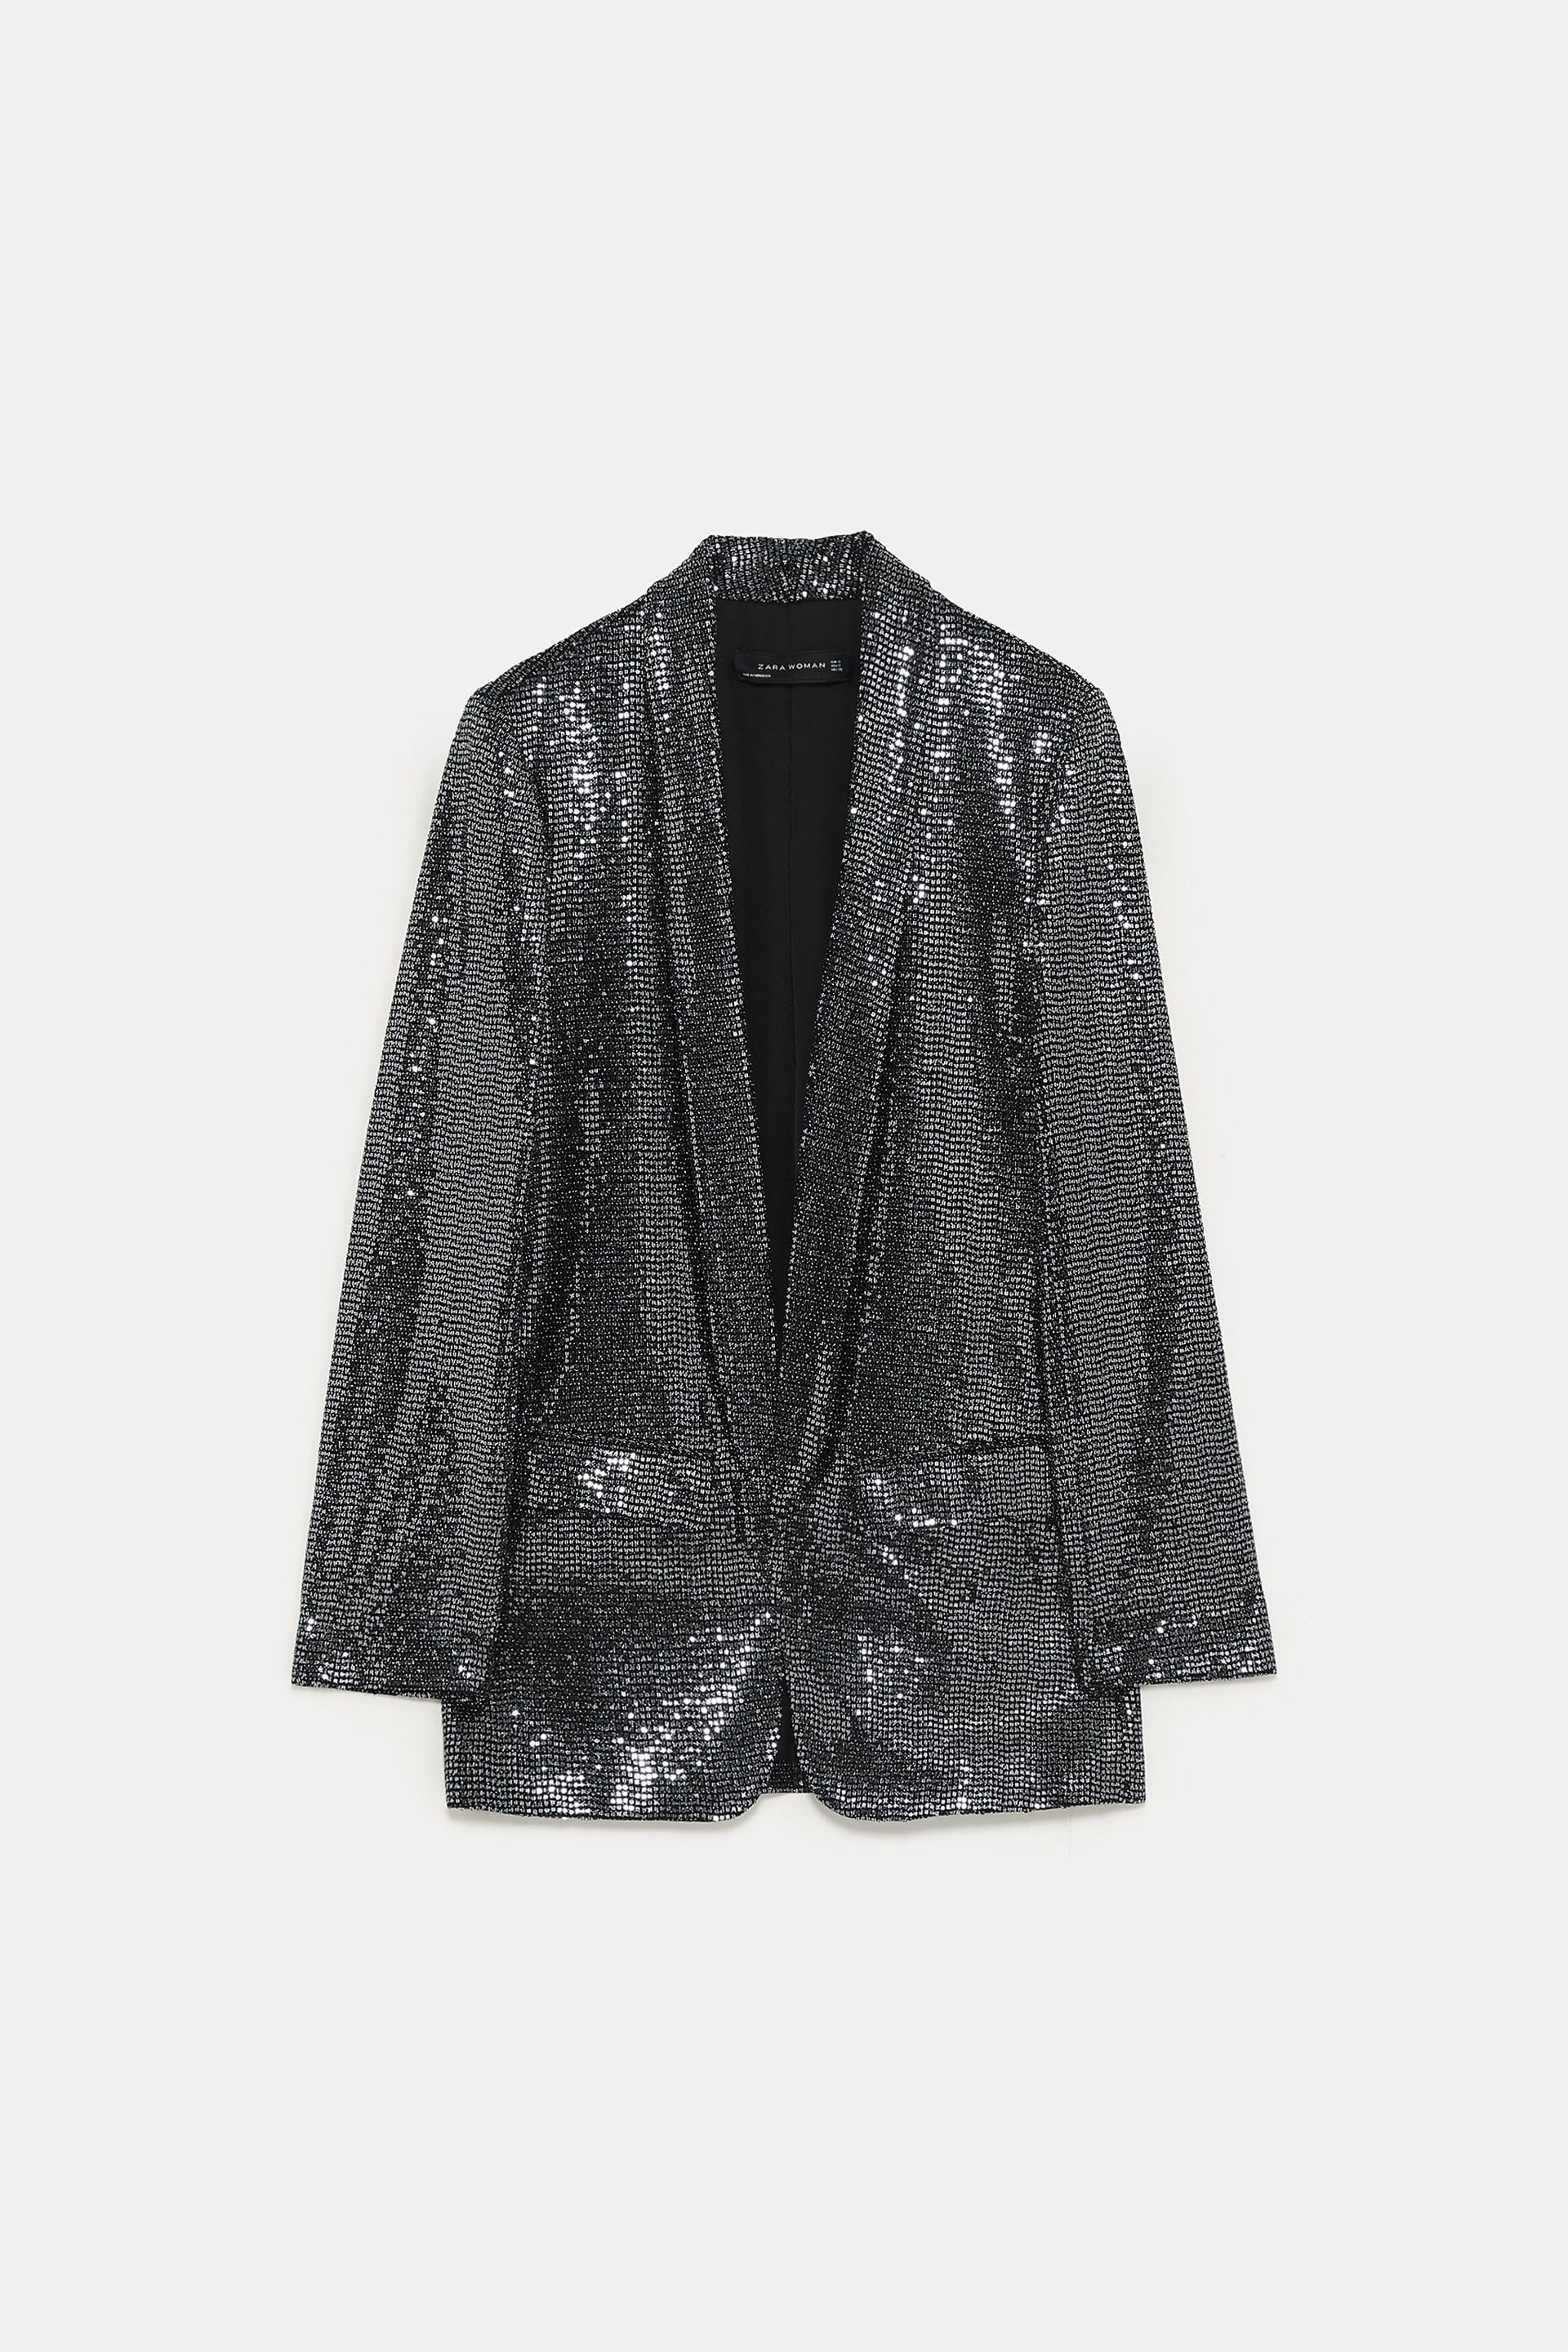 4f46514a40e89 Image 7 of SEQUIN JACKET from Zara